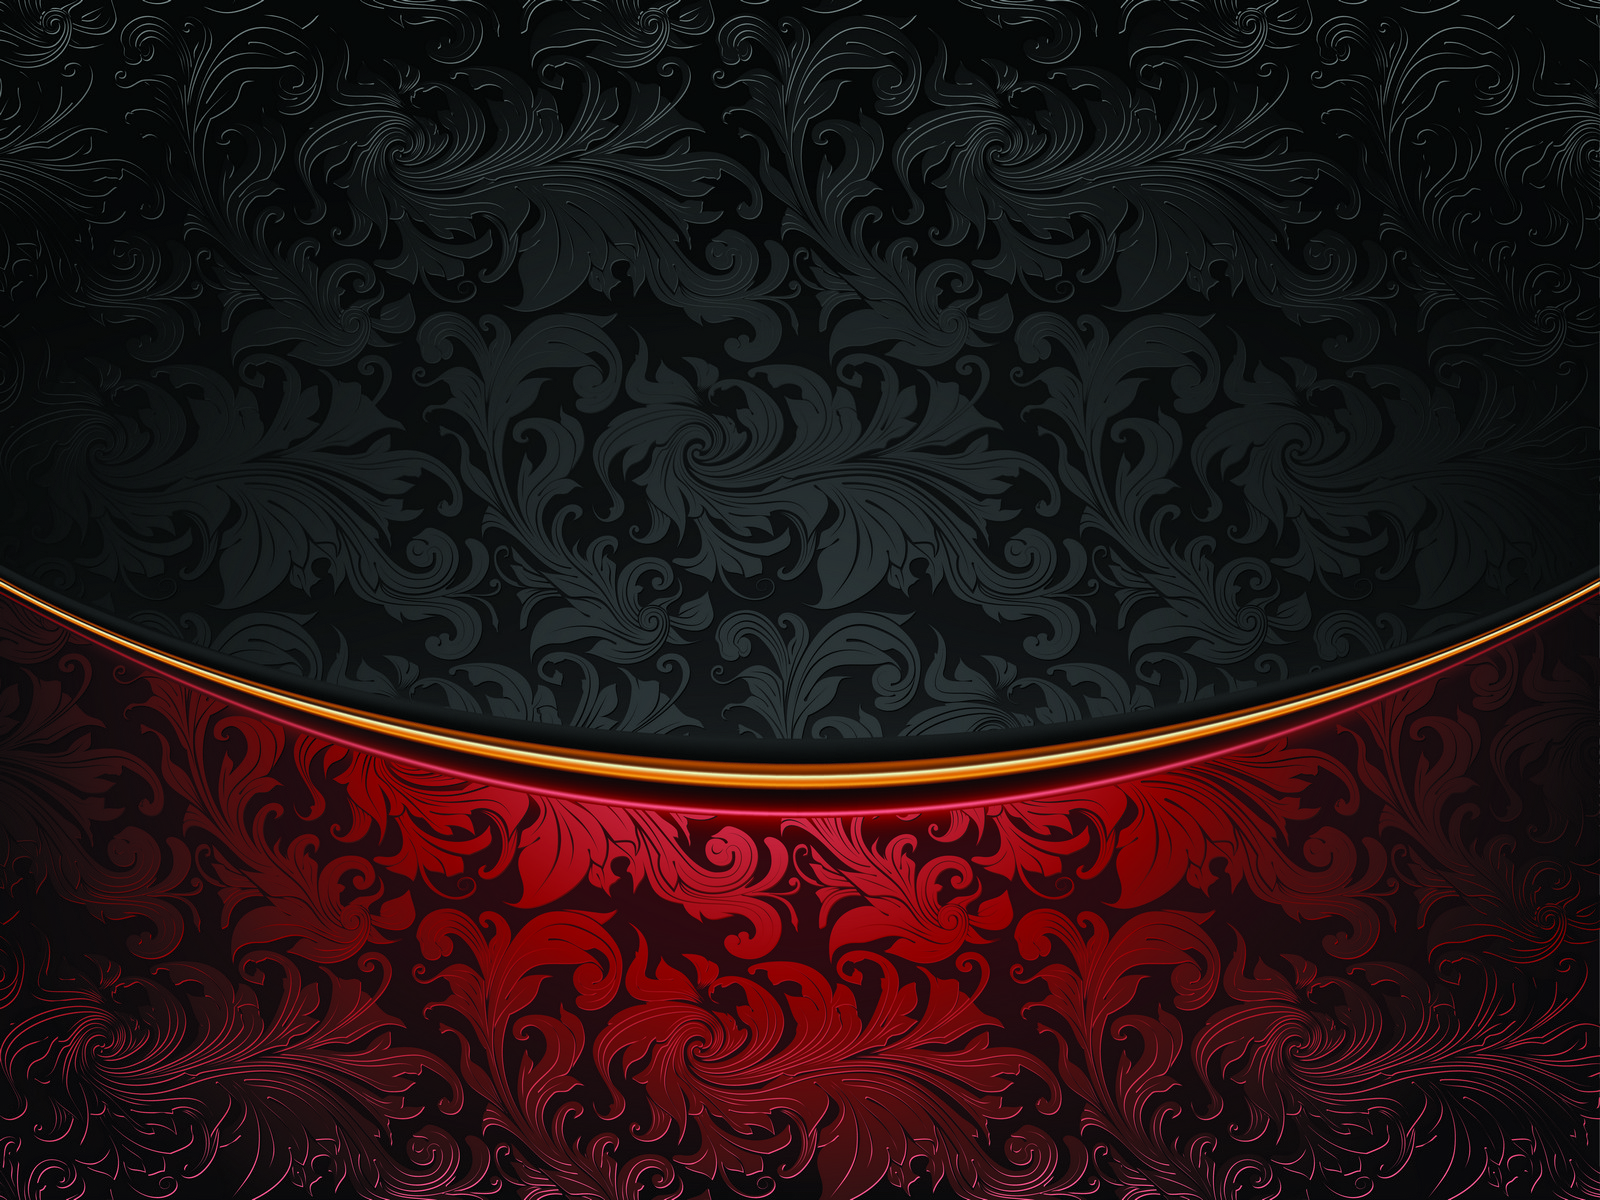 Black Red Floral Bg PPT Backgrounds